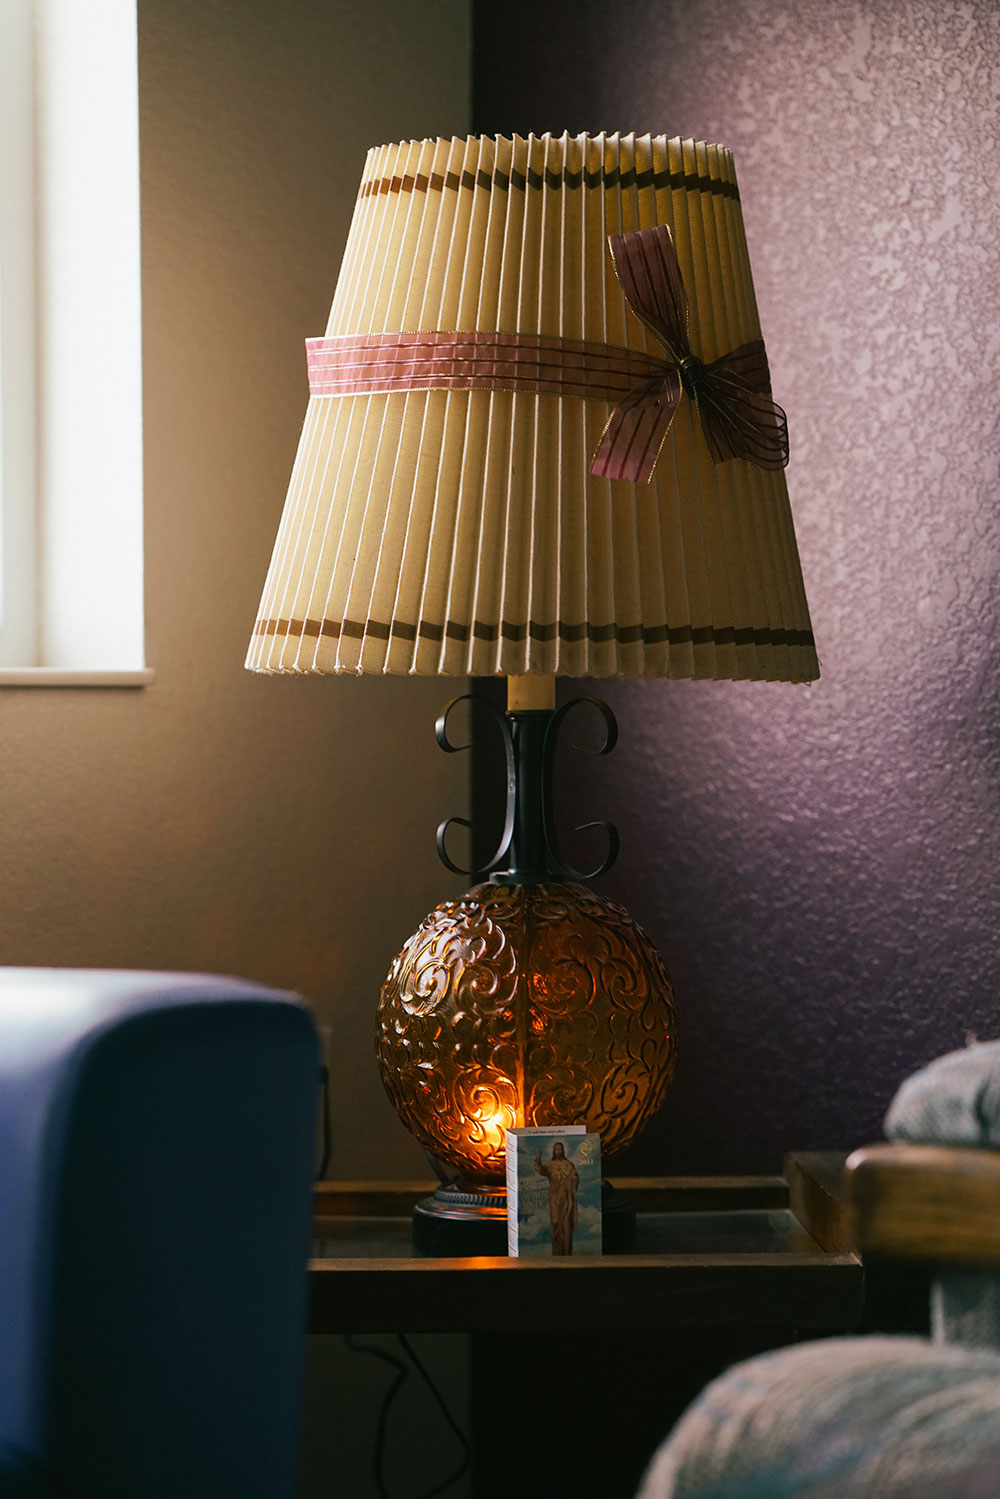 Her brother helped her decorate her apartment and bought Maria this lamp, which she said visitors always compliment.